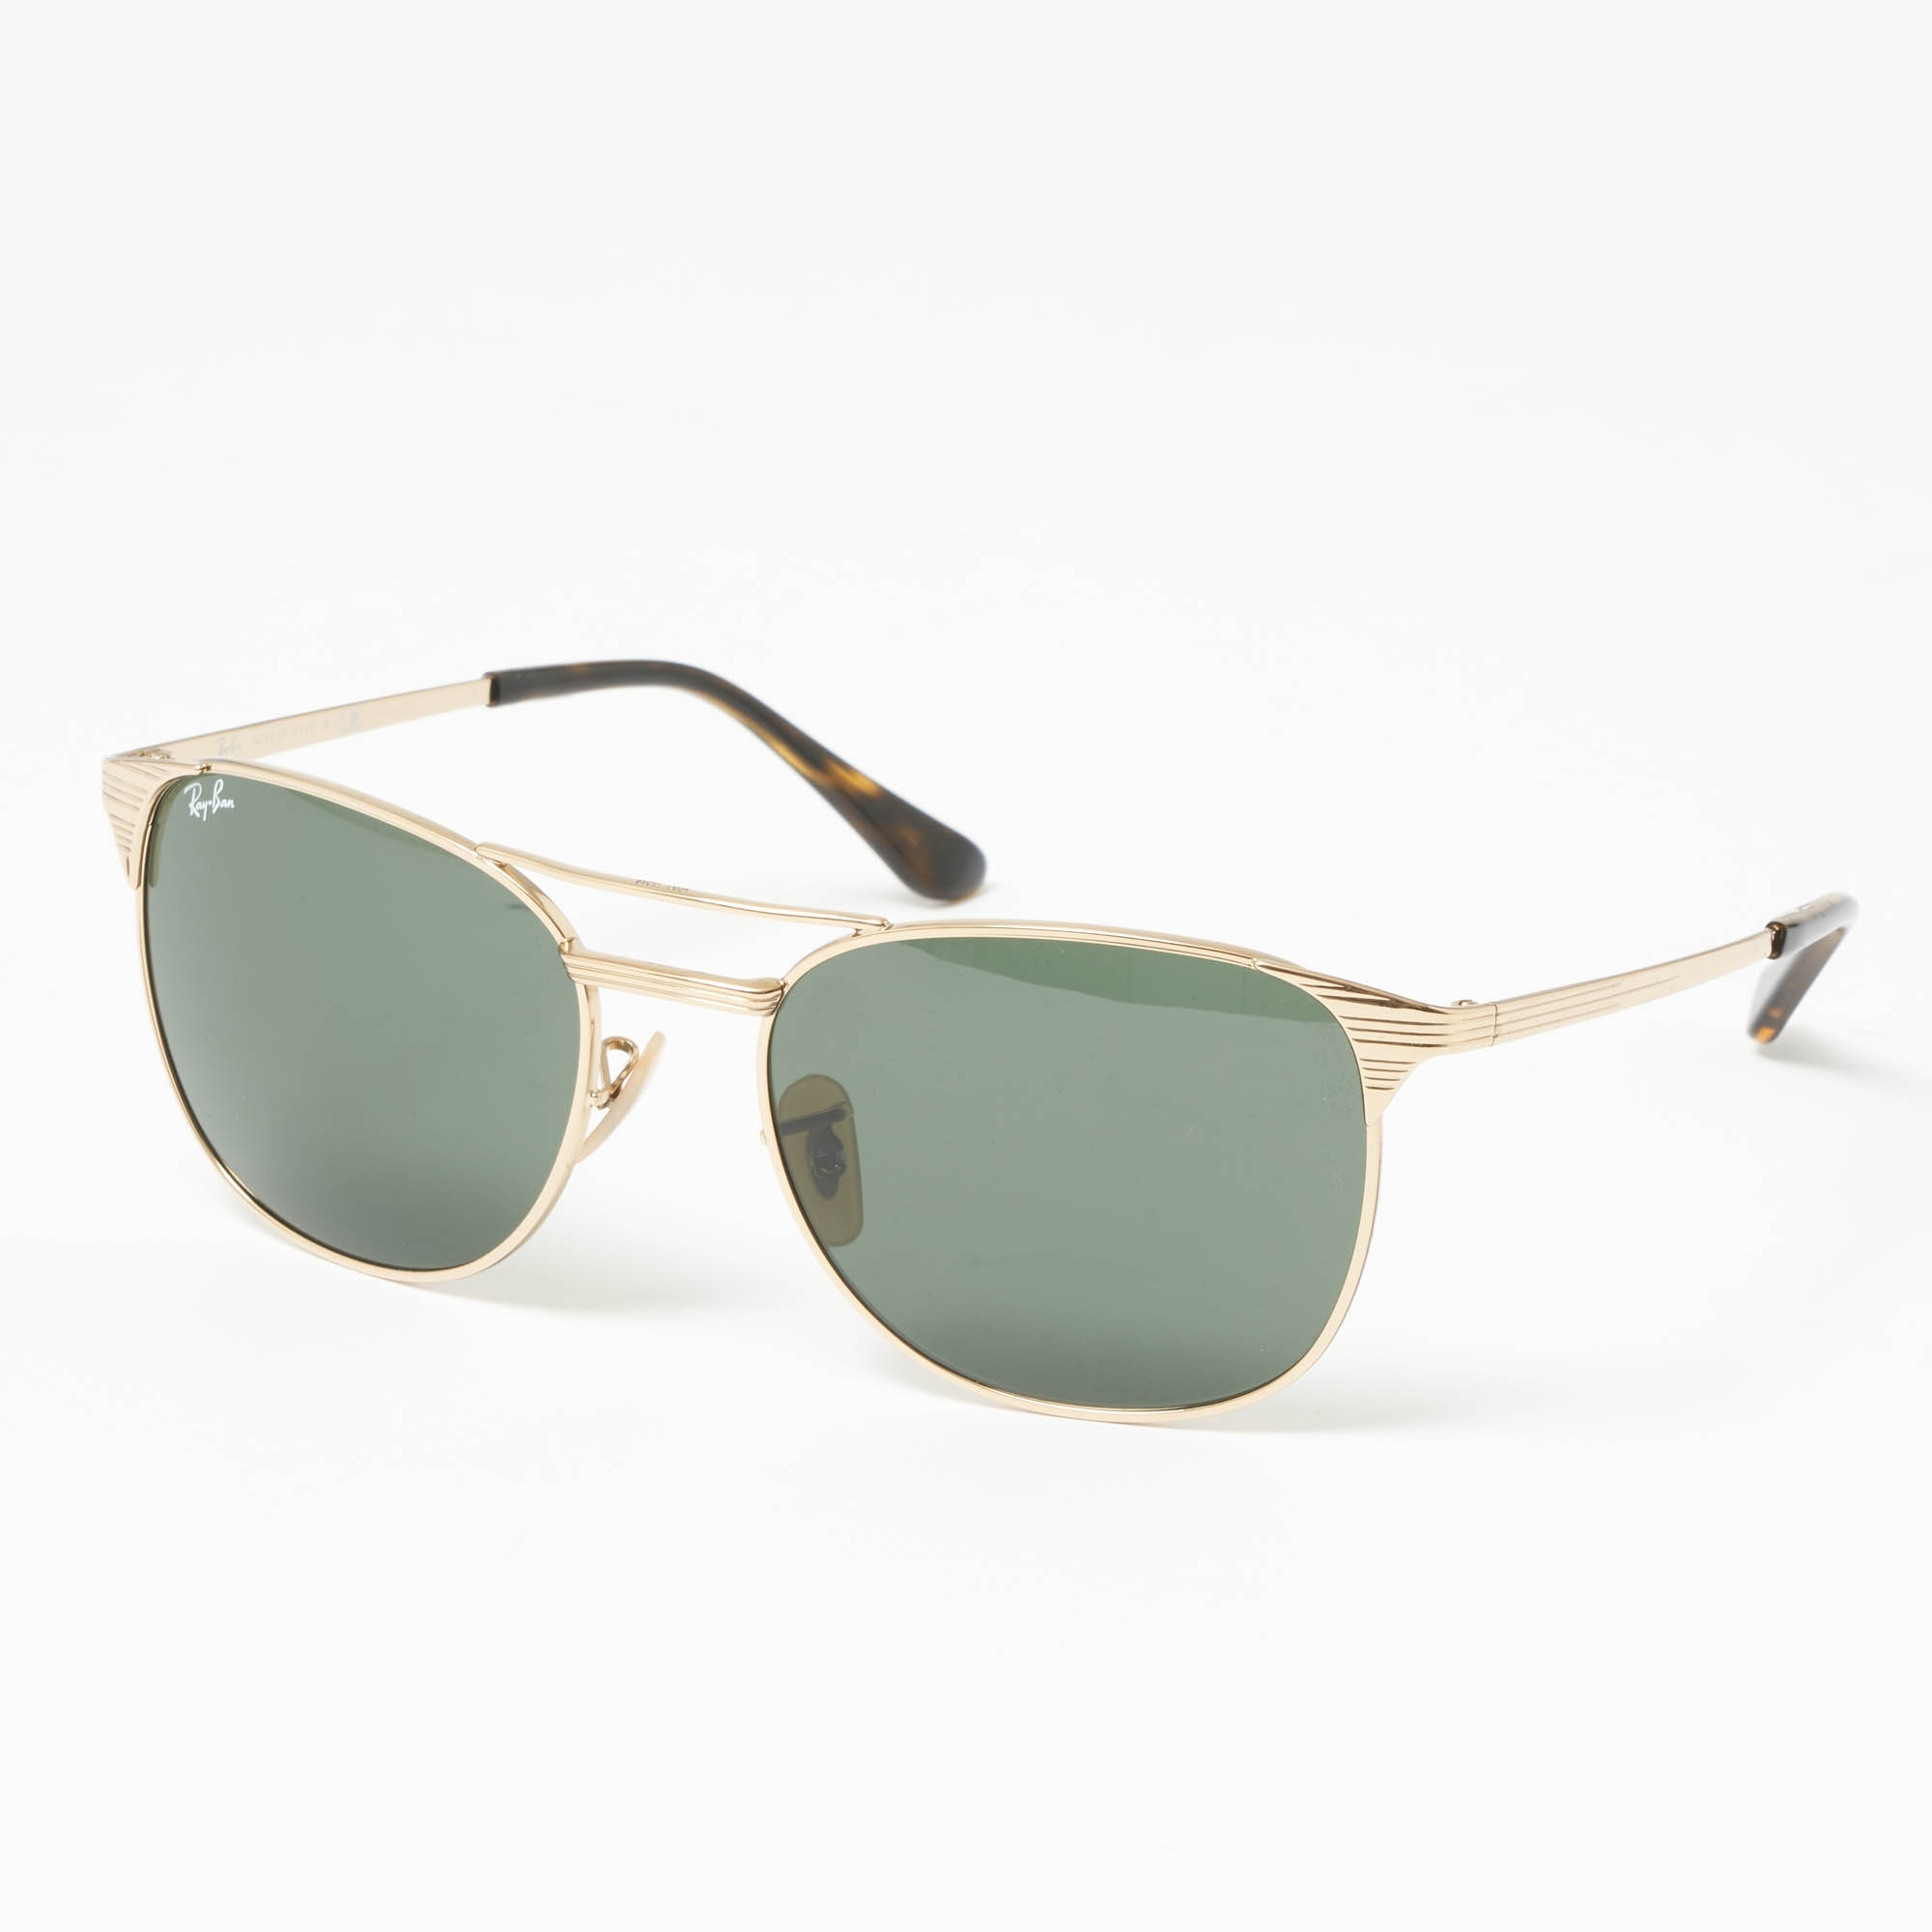 551b2e211e Gold Signet Sunglasses - Green Classic G-15 Lenses